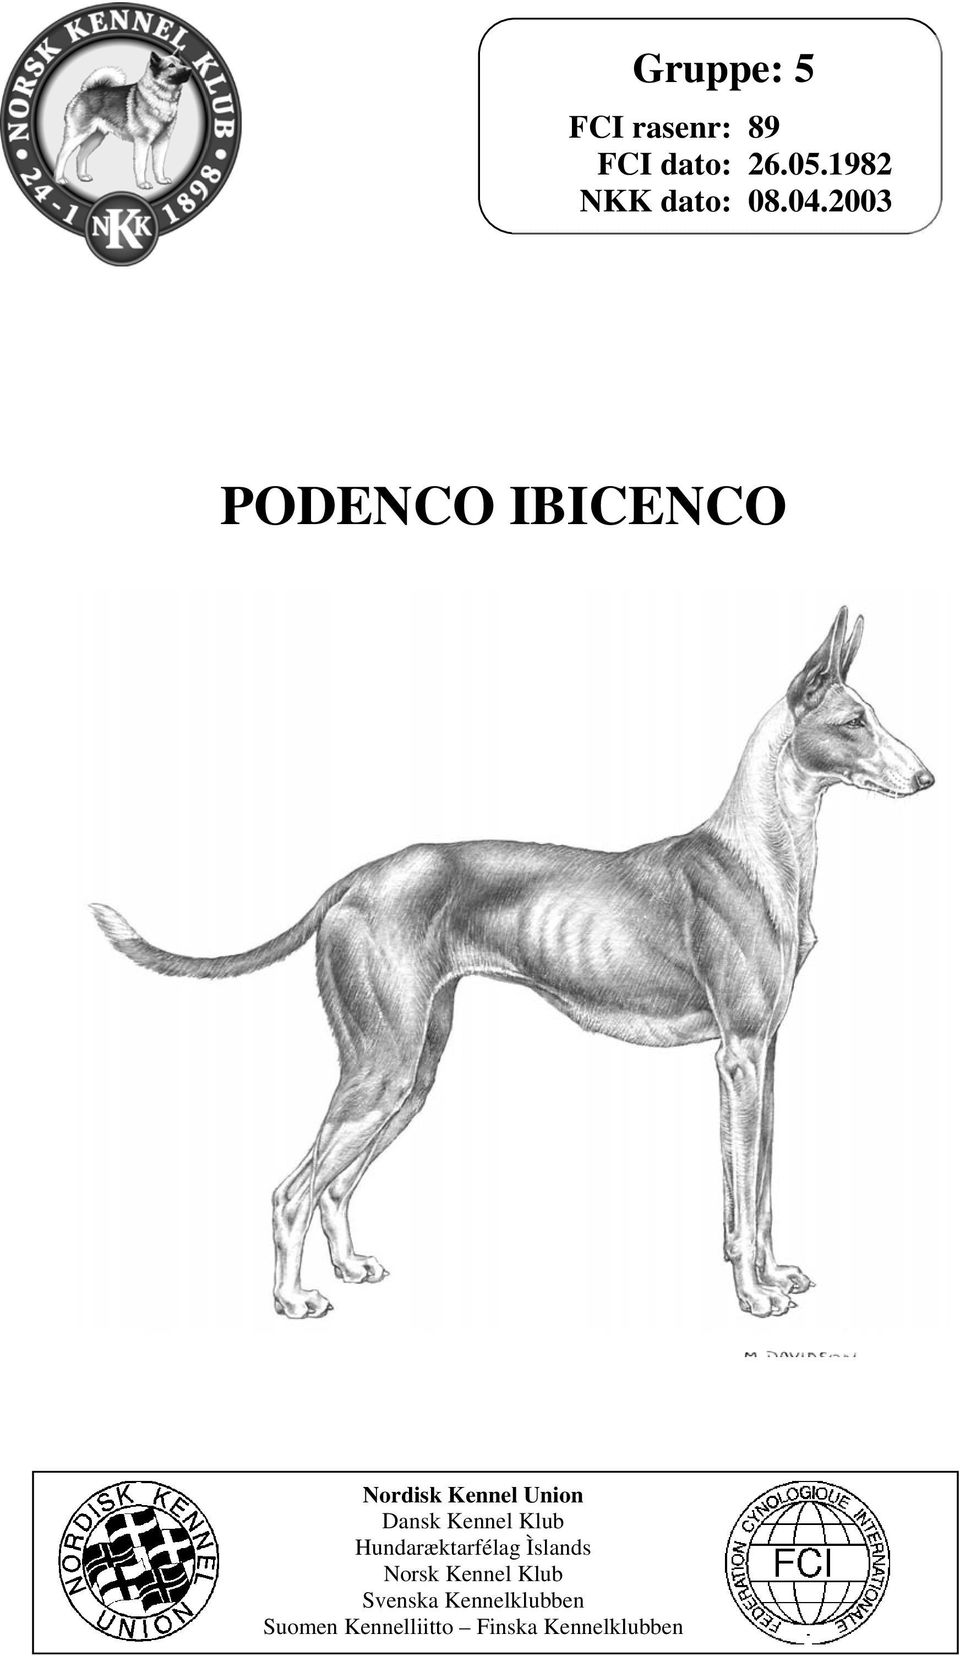 2003 PODENCO IBICENCO Nordisk Kennel Union Dansk Kennel